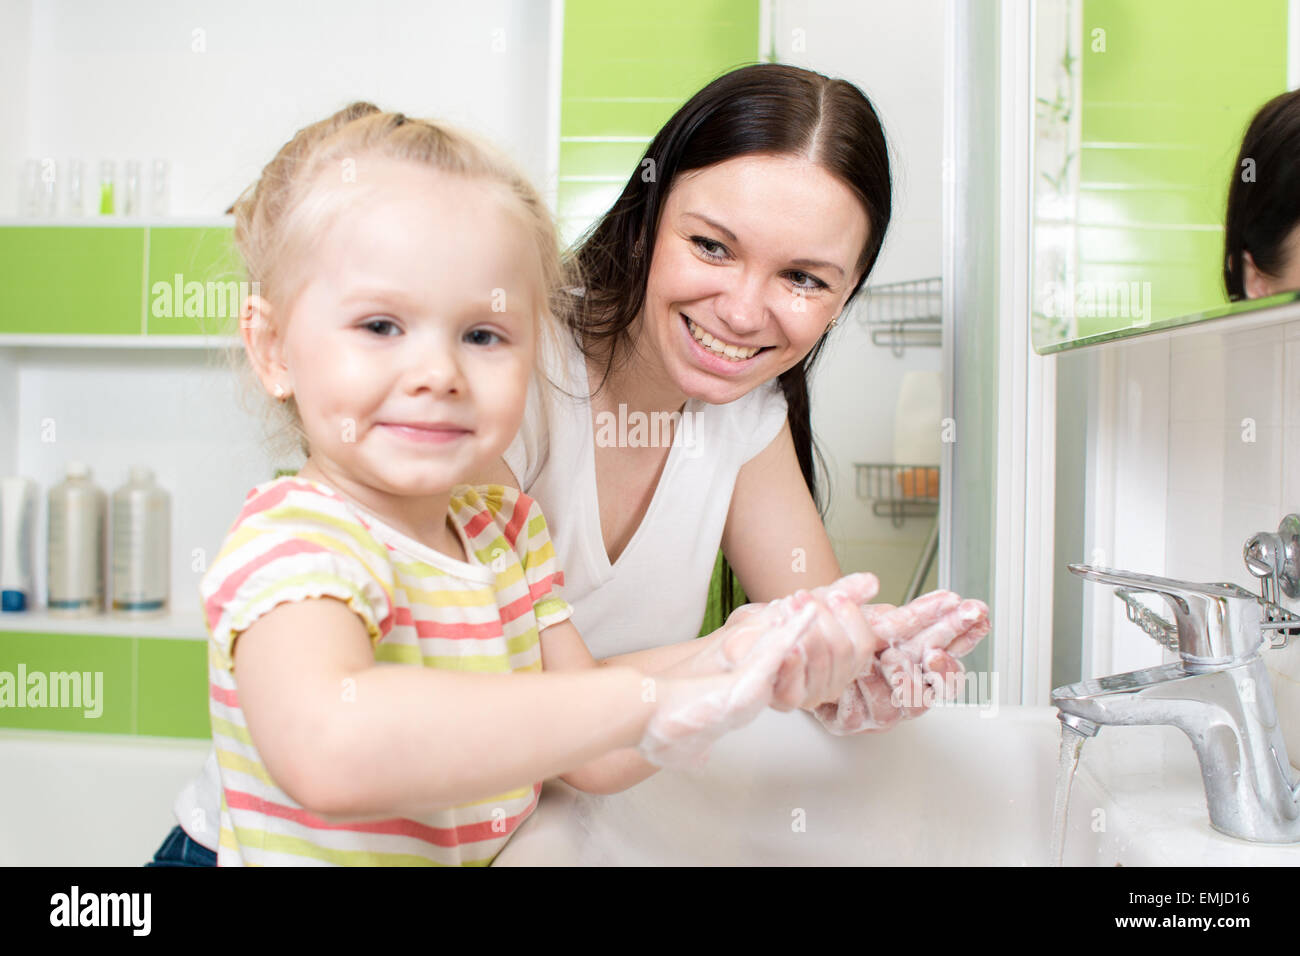 young woman and her daughter washing hands with soap in bathroom - Stock Image